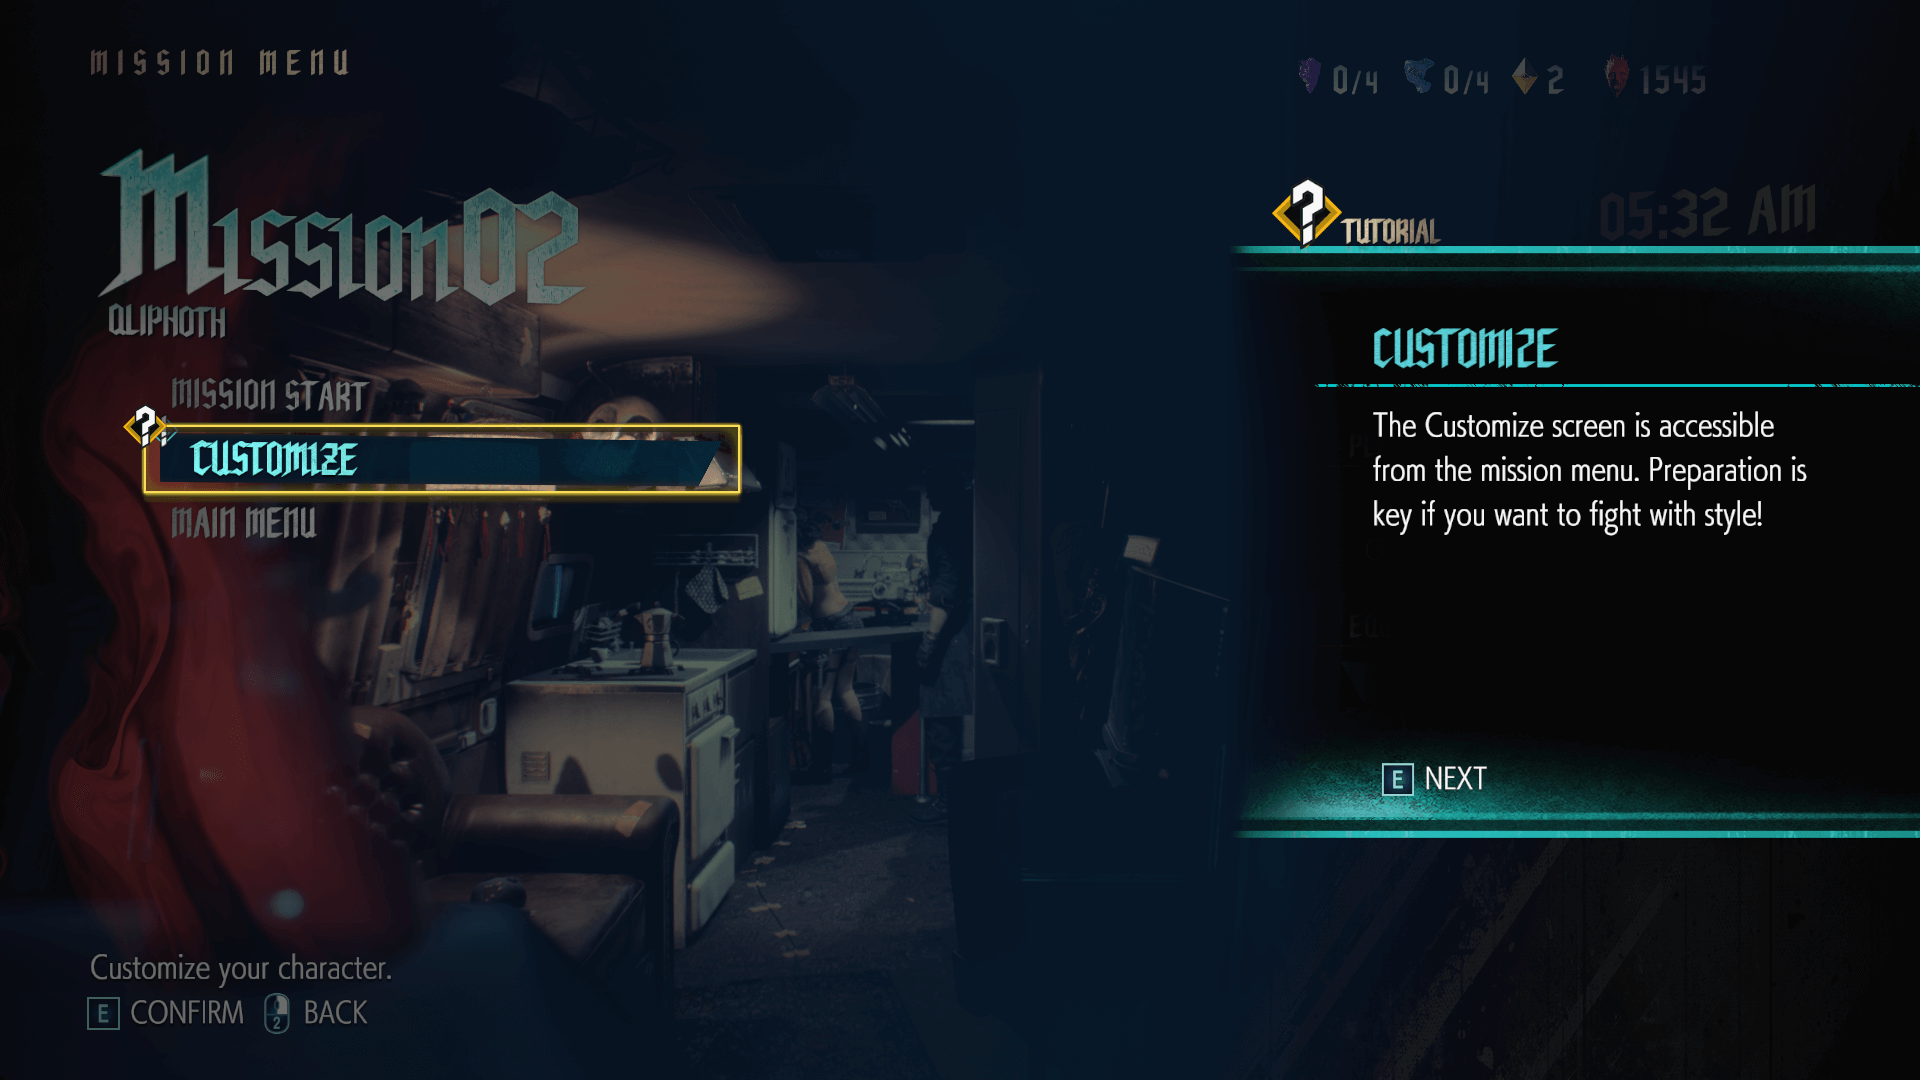 Mission menu screenshot of Devil May Cry 5 video game interface.